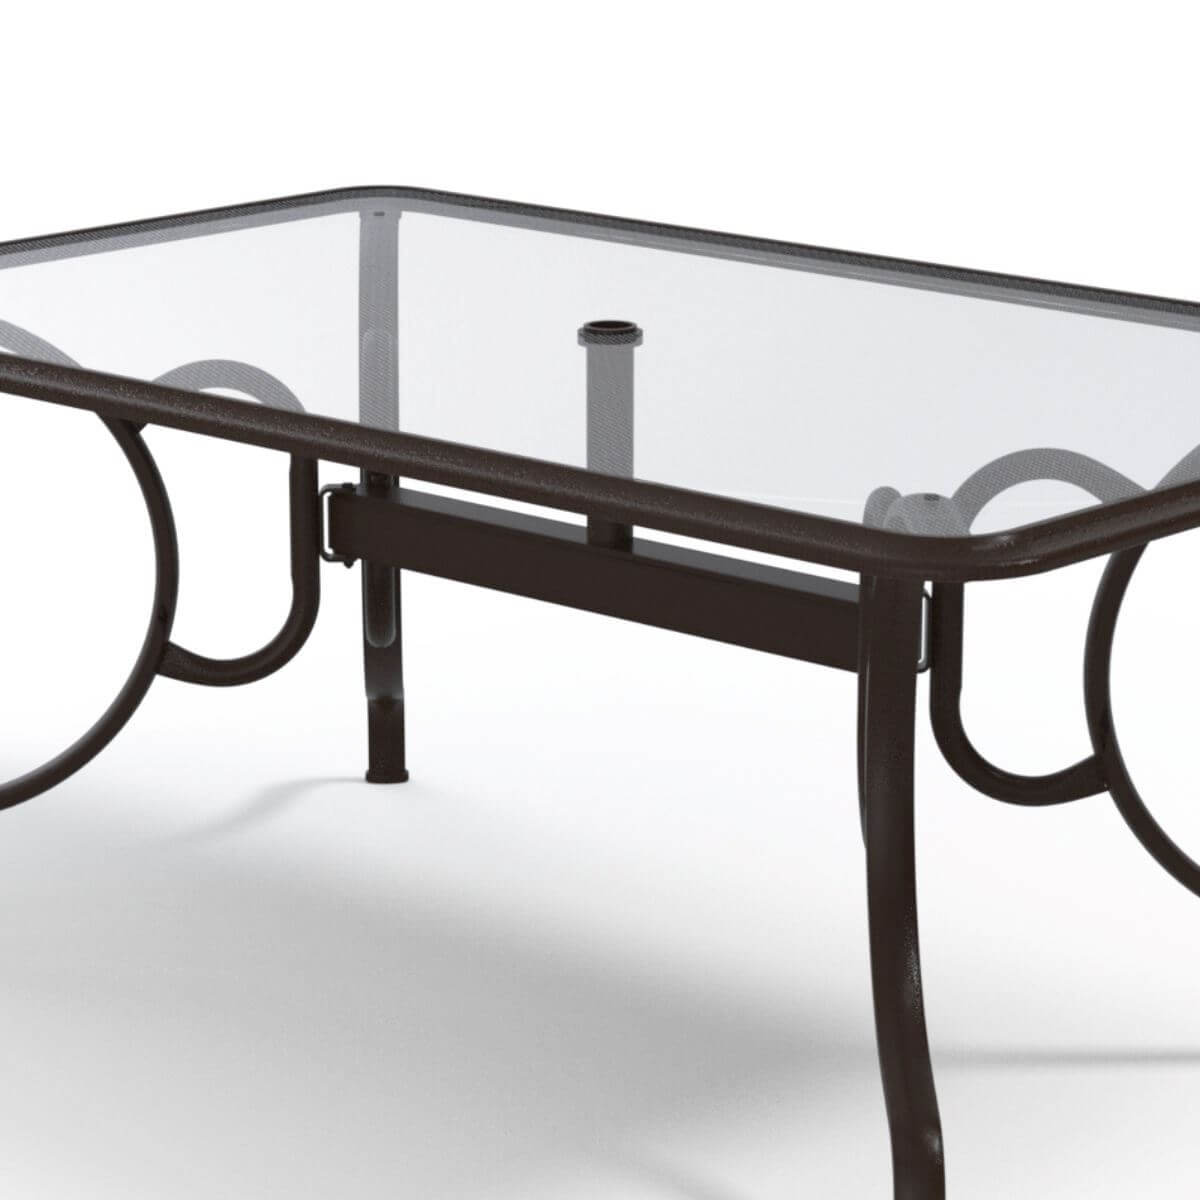 Dining Table 42x68 Inch Rectangular Glass Aluminum Pool Furniture